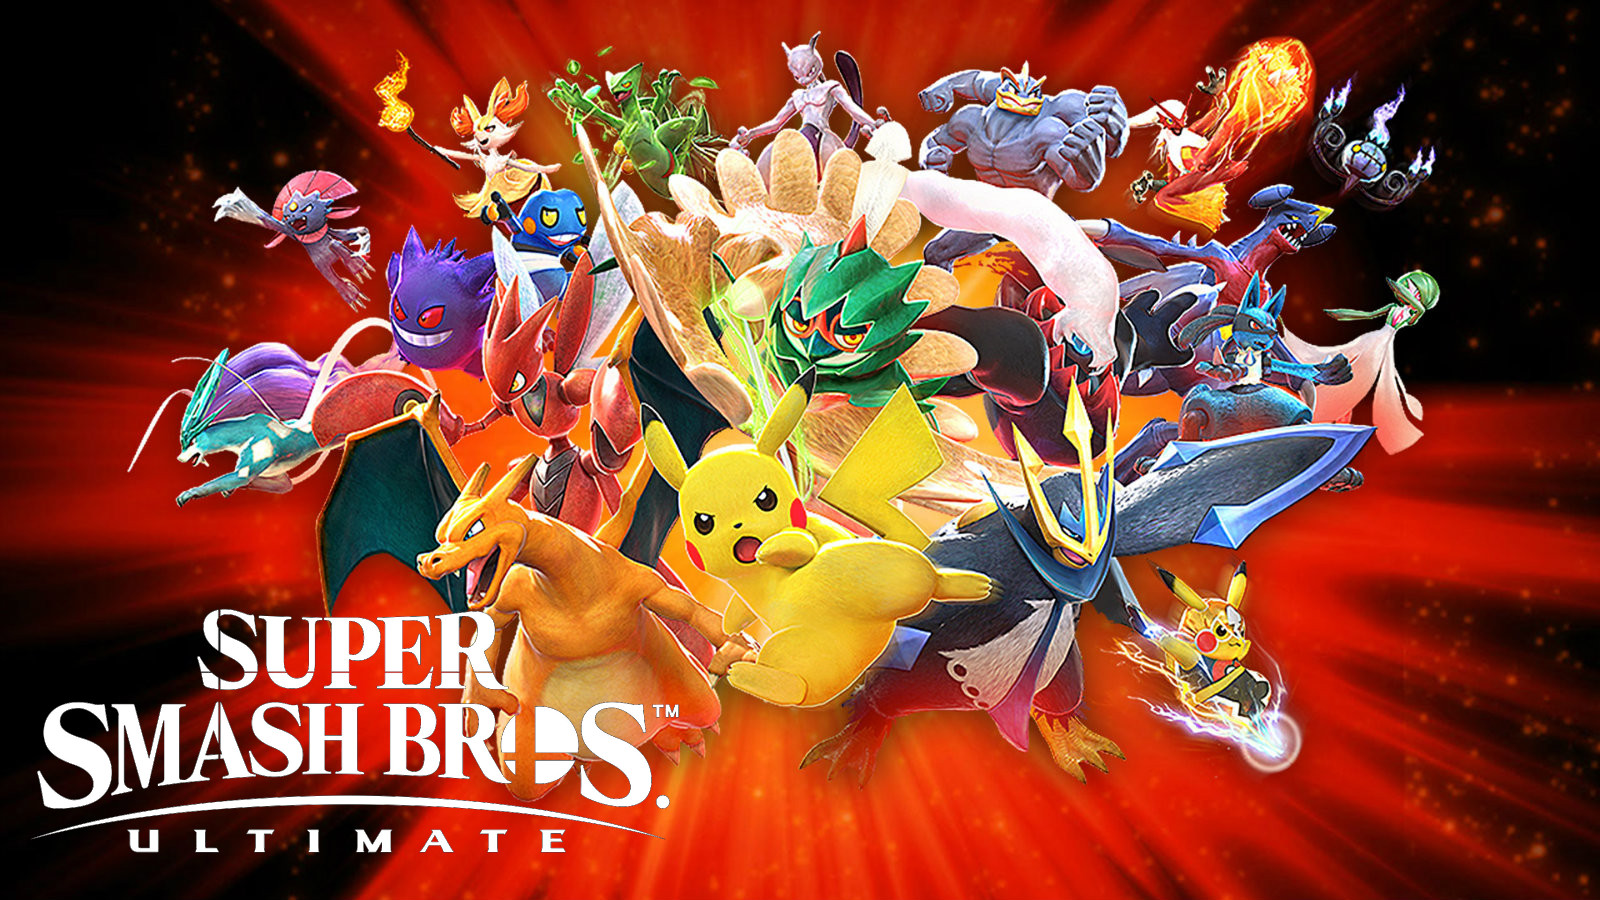 Pokken roster with Smash Ultimate logo